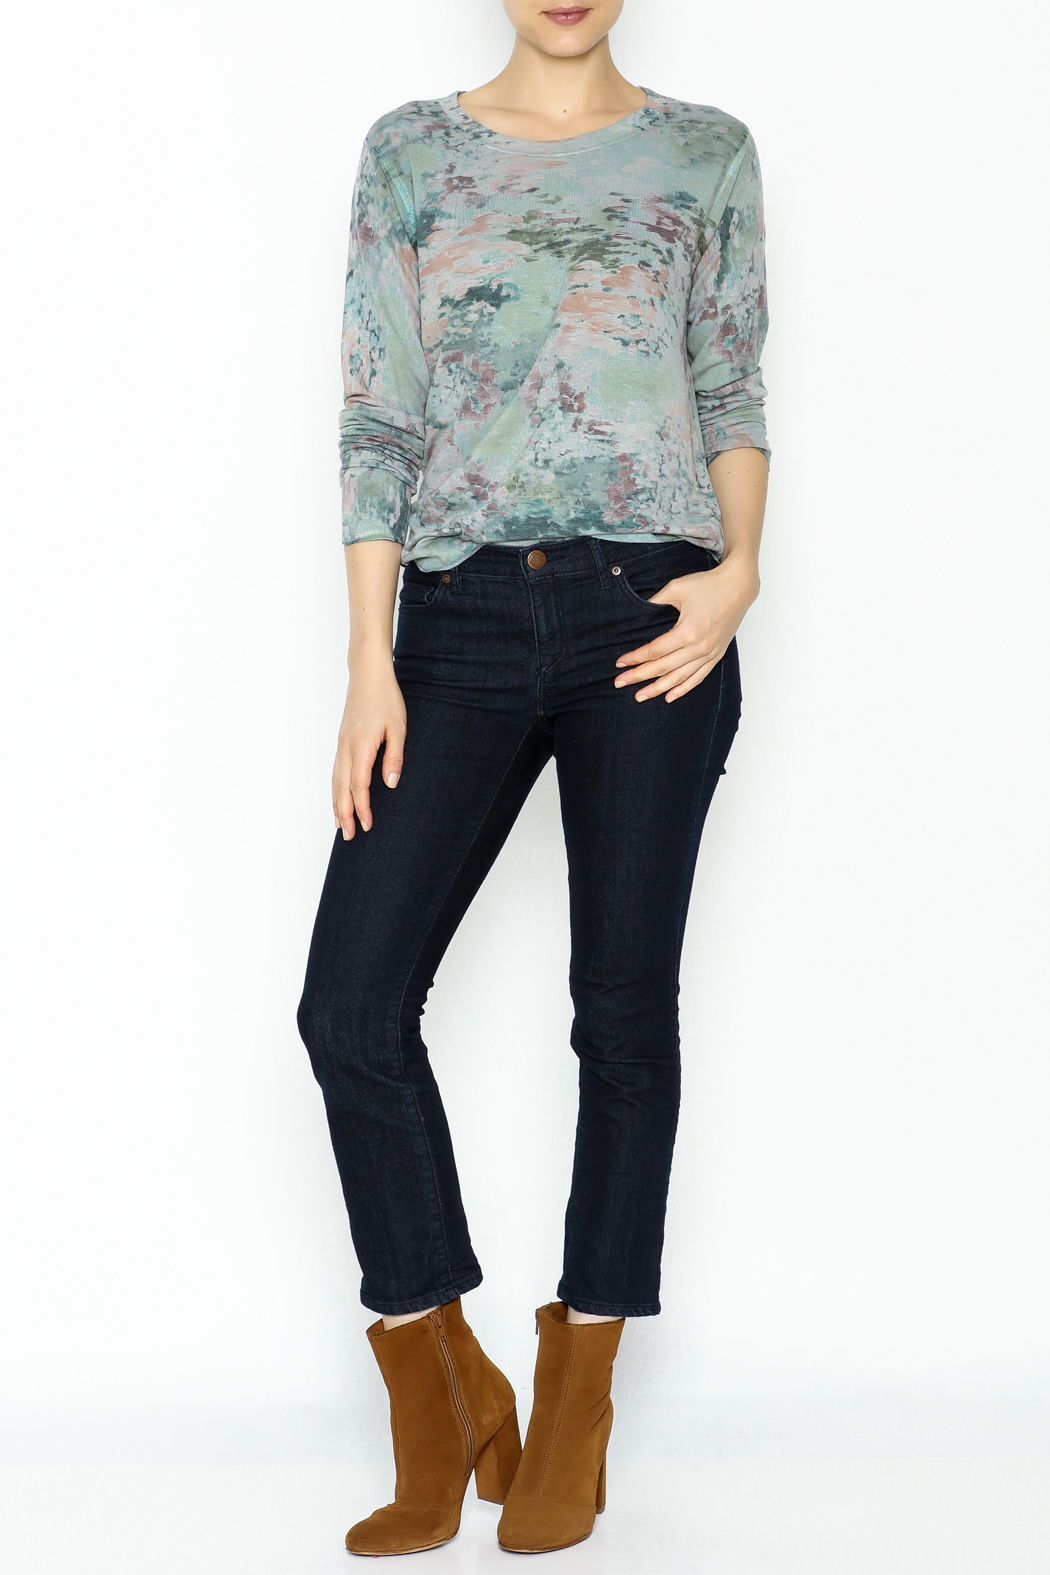 Nally & Millie Monet Print Jersey Top - Side Cropped Image